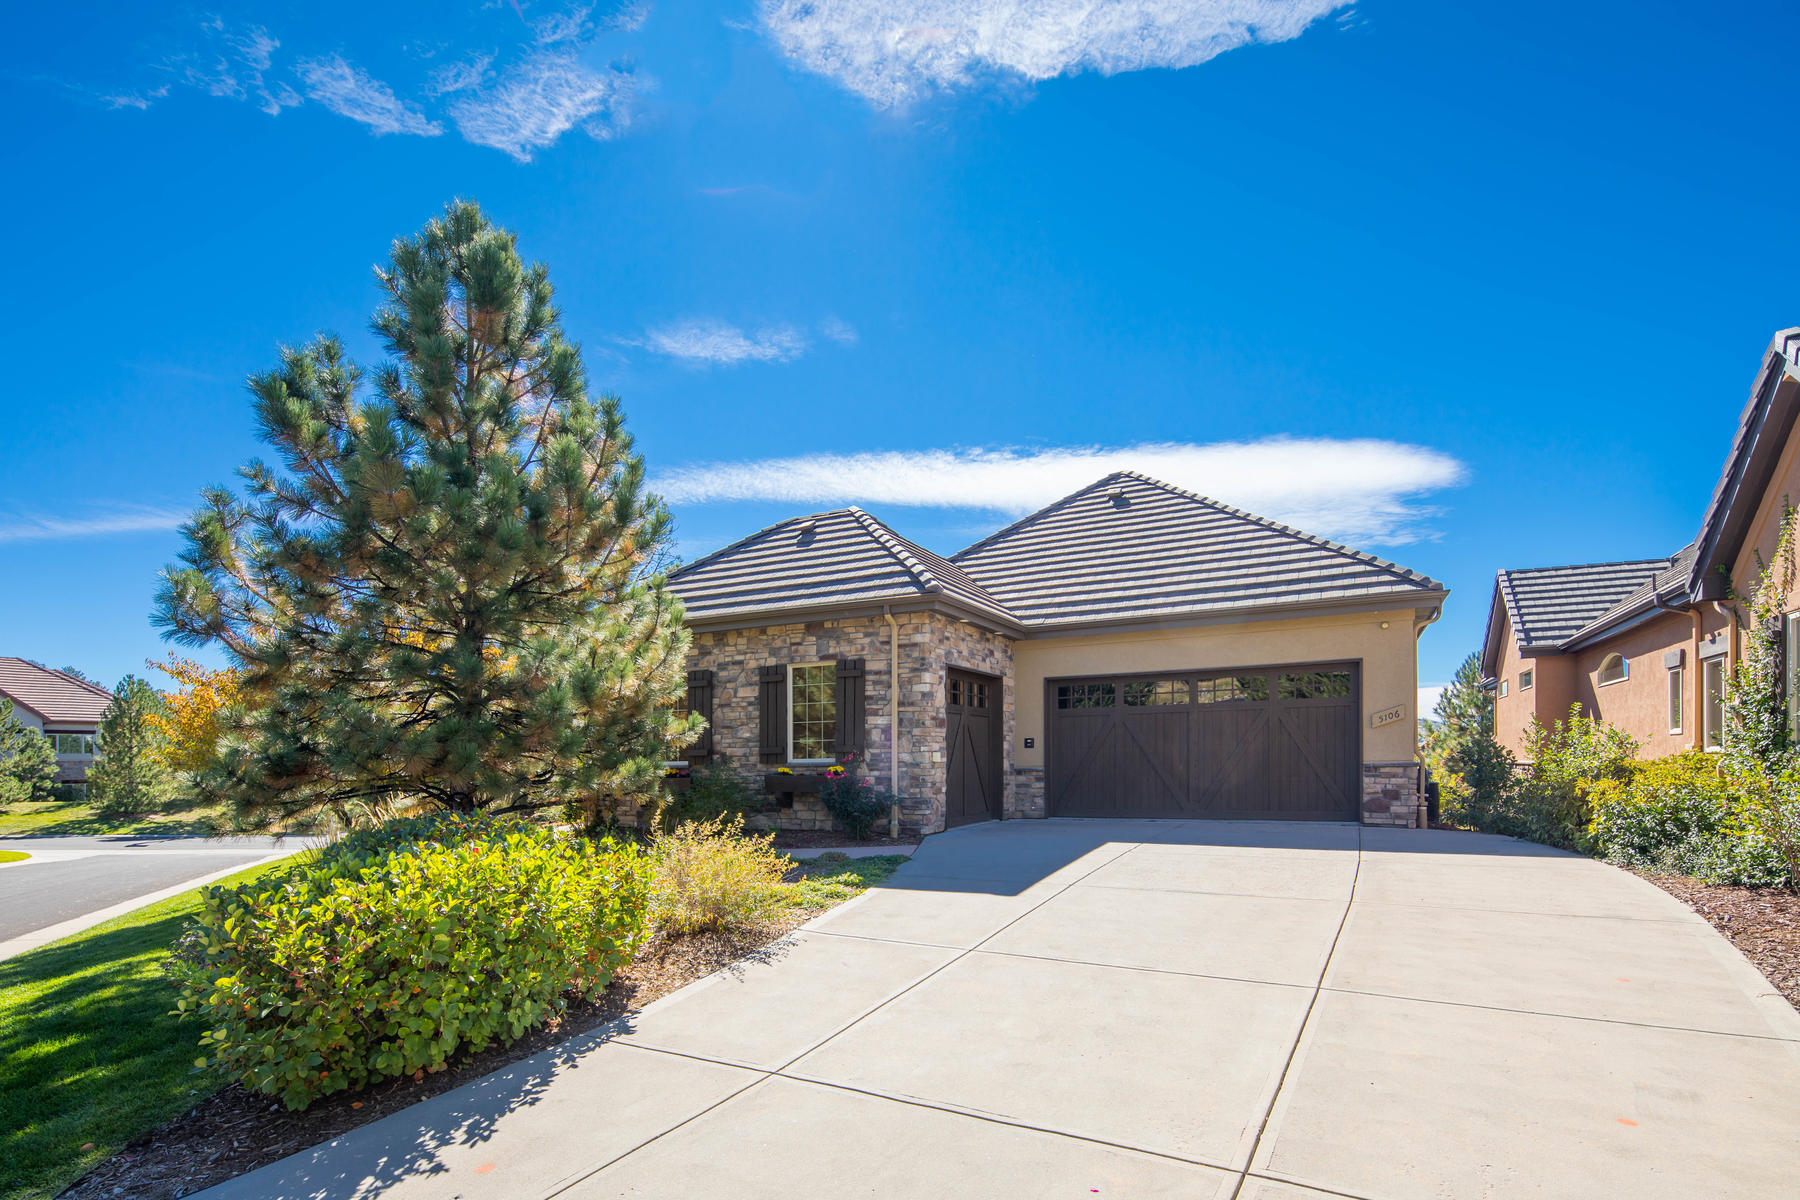 Single Family Home for Active at 5106 Ten Mile Pl 5106 Ten Mile Pl Castle Rock, Colorado 80108 United States